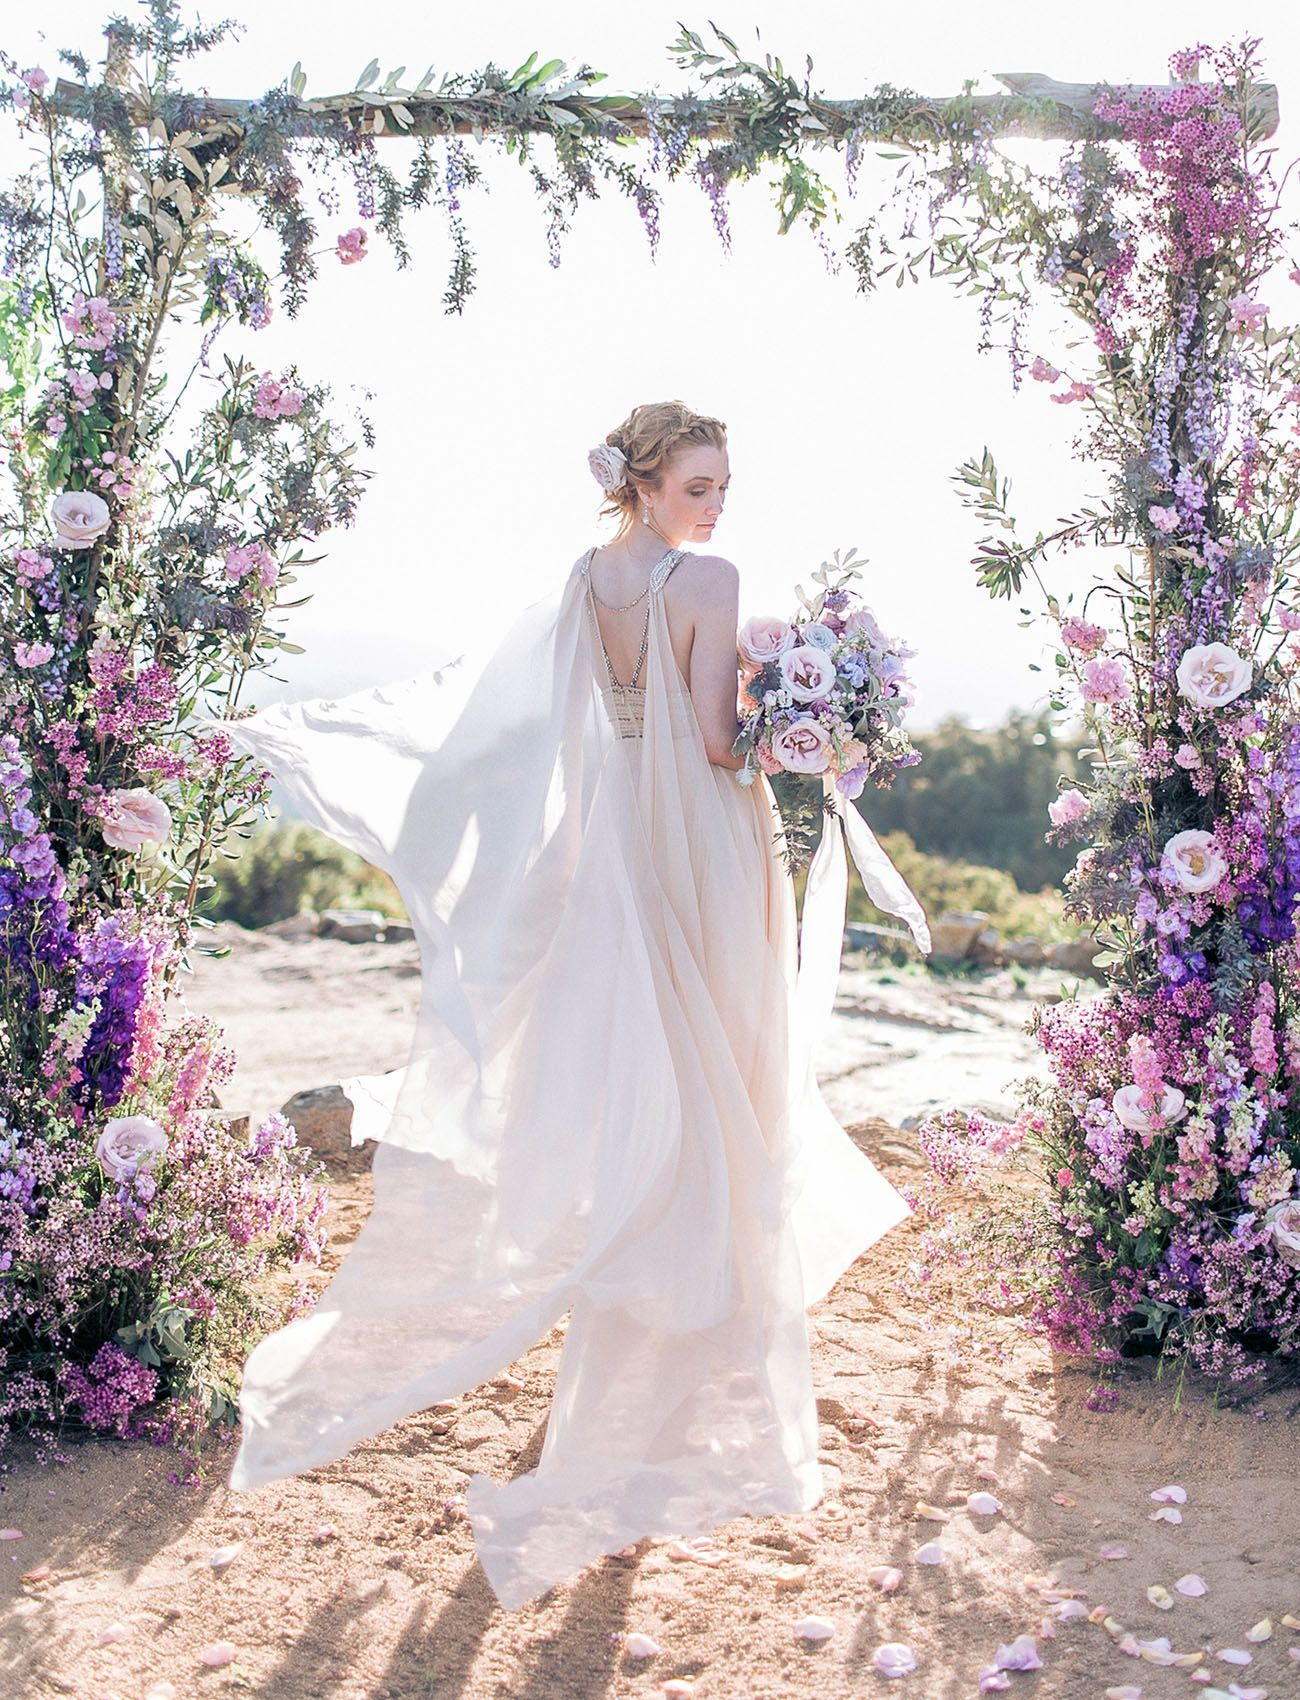 The Most Amazing Floral Arch We Ve Ever Seen Seriously Sparkly